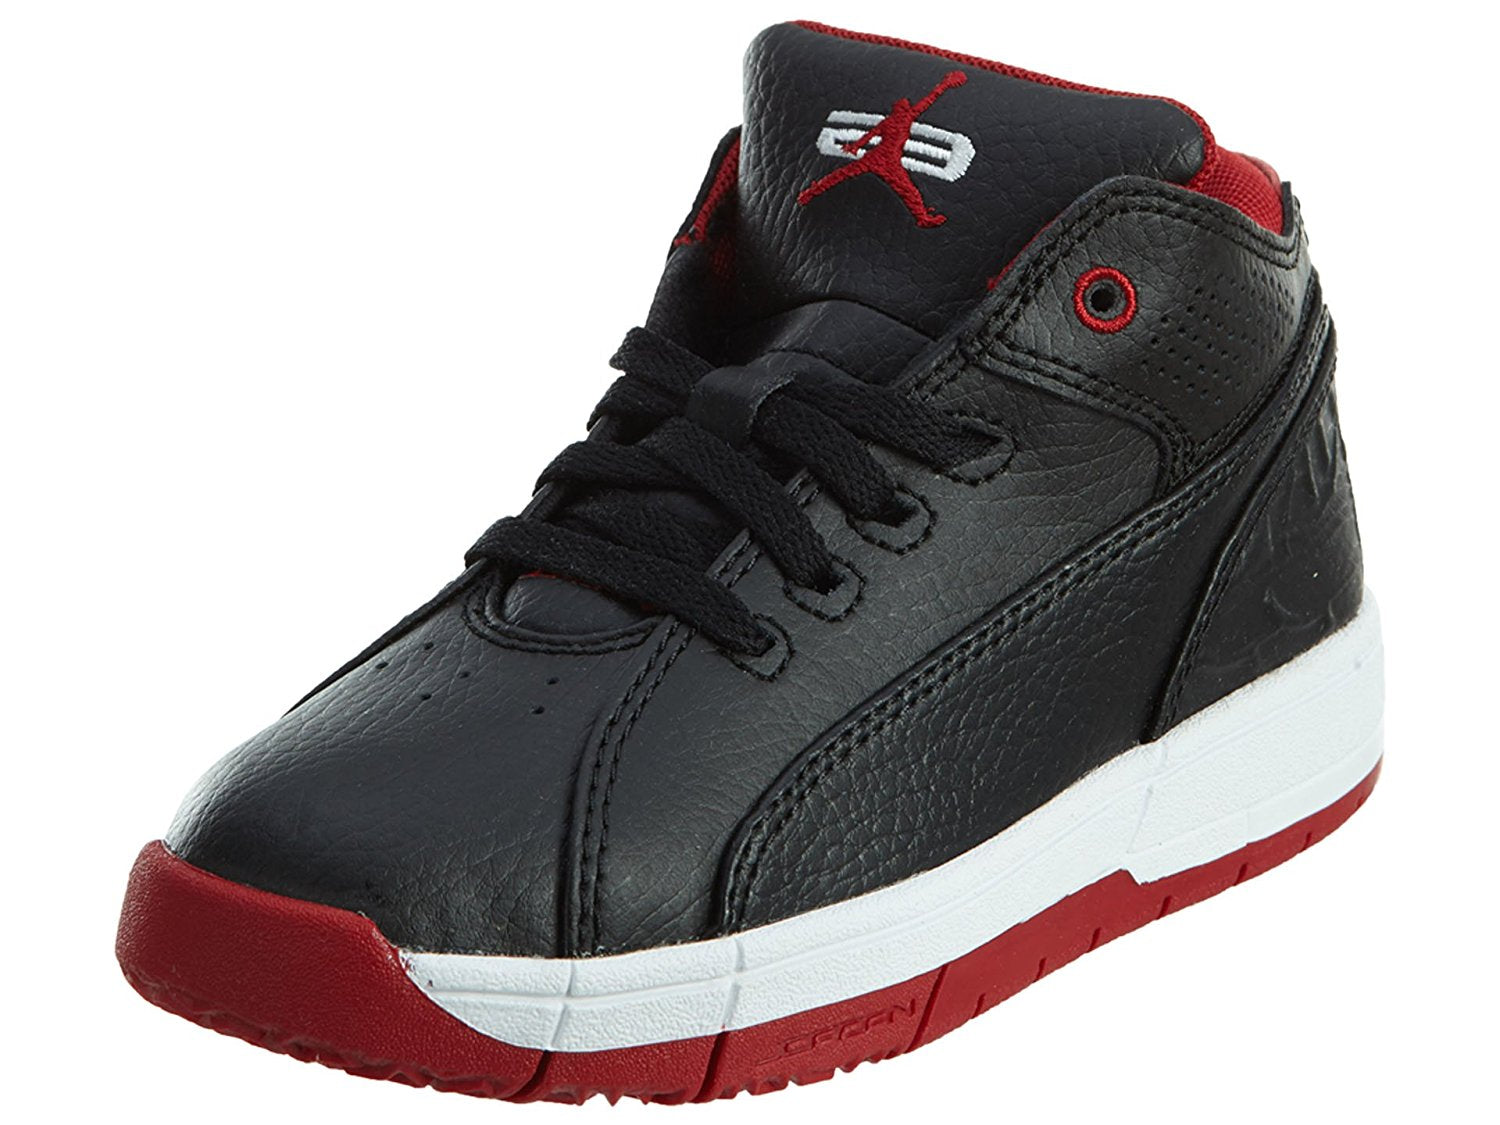 air jordan 1 retro phat low kids' basketball shoe